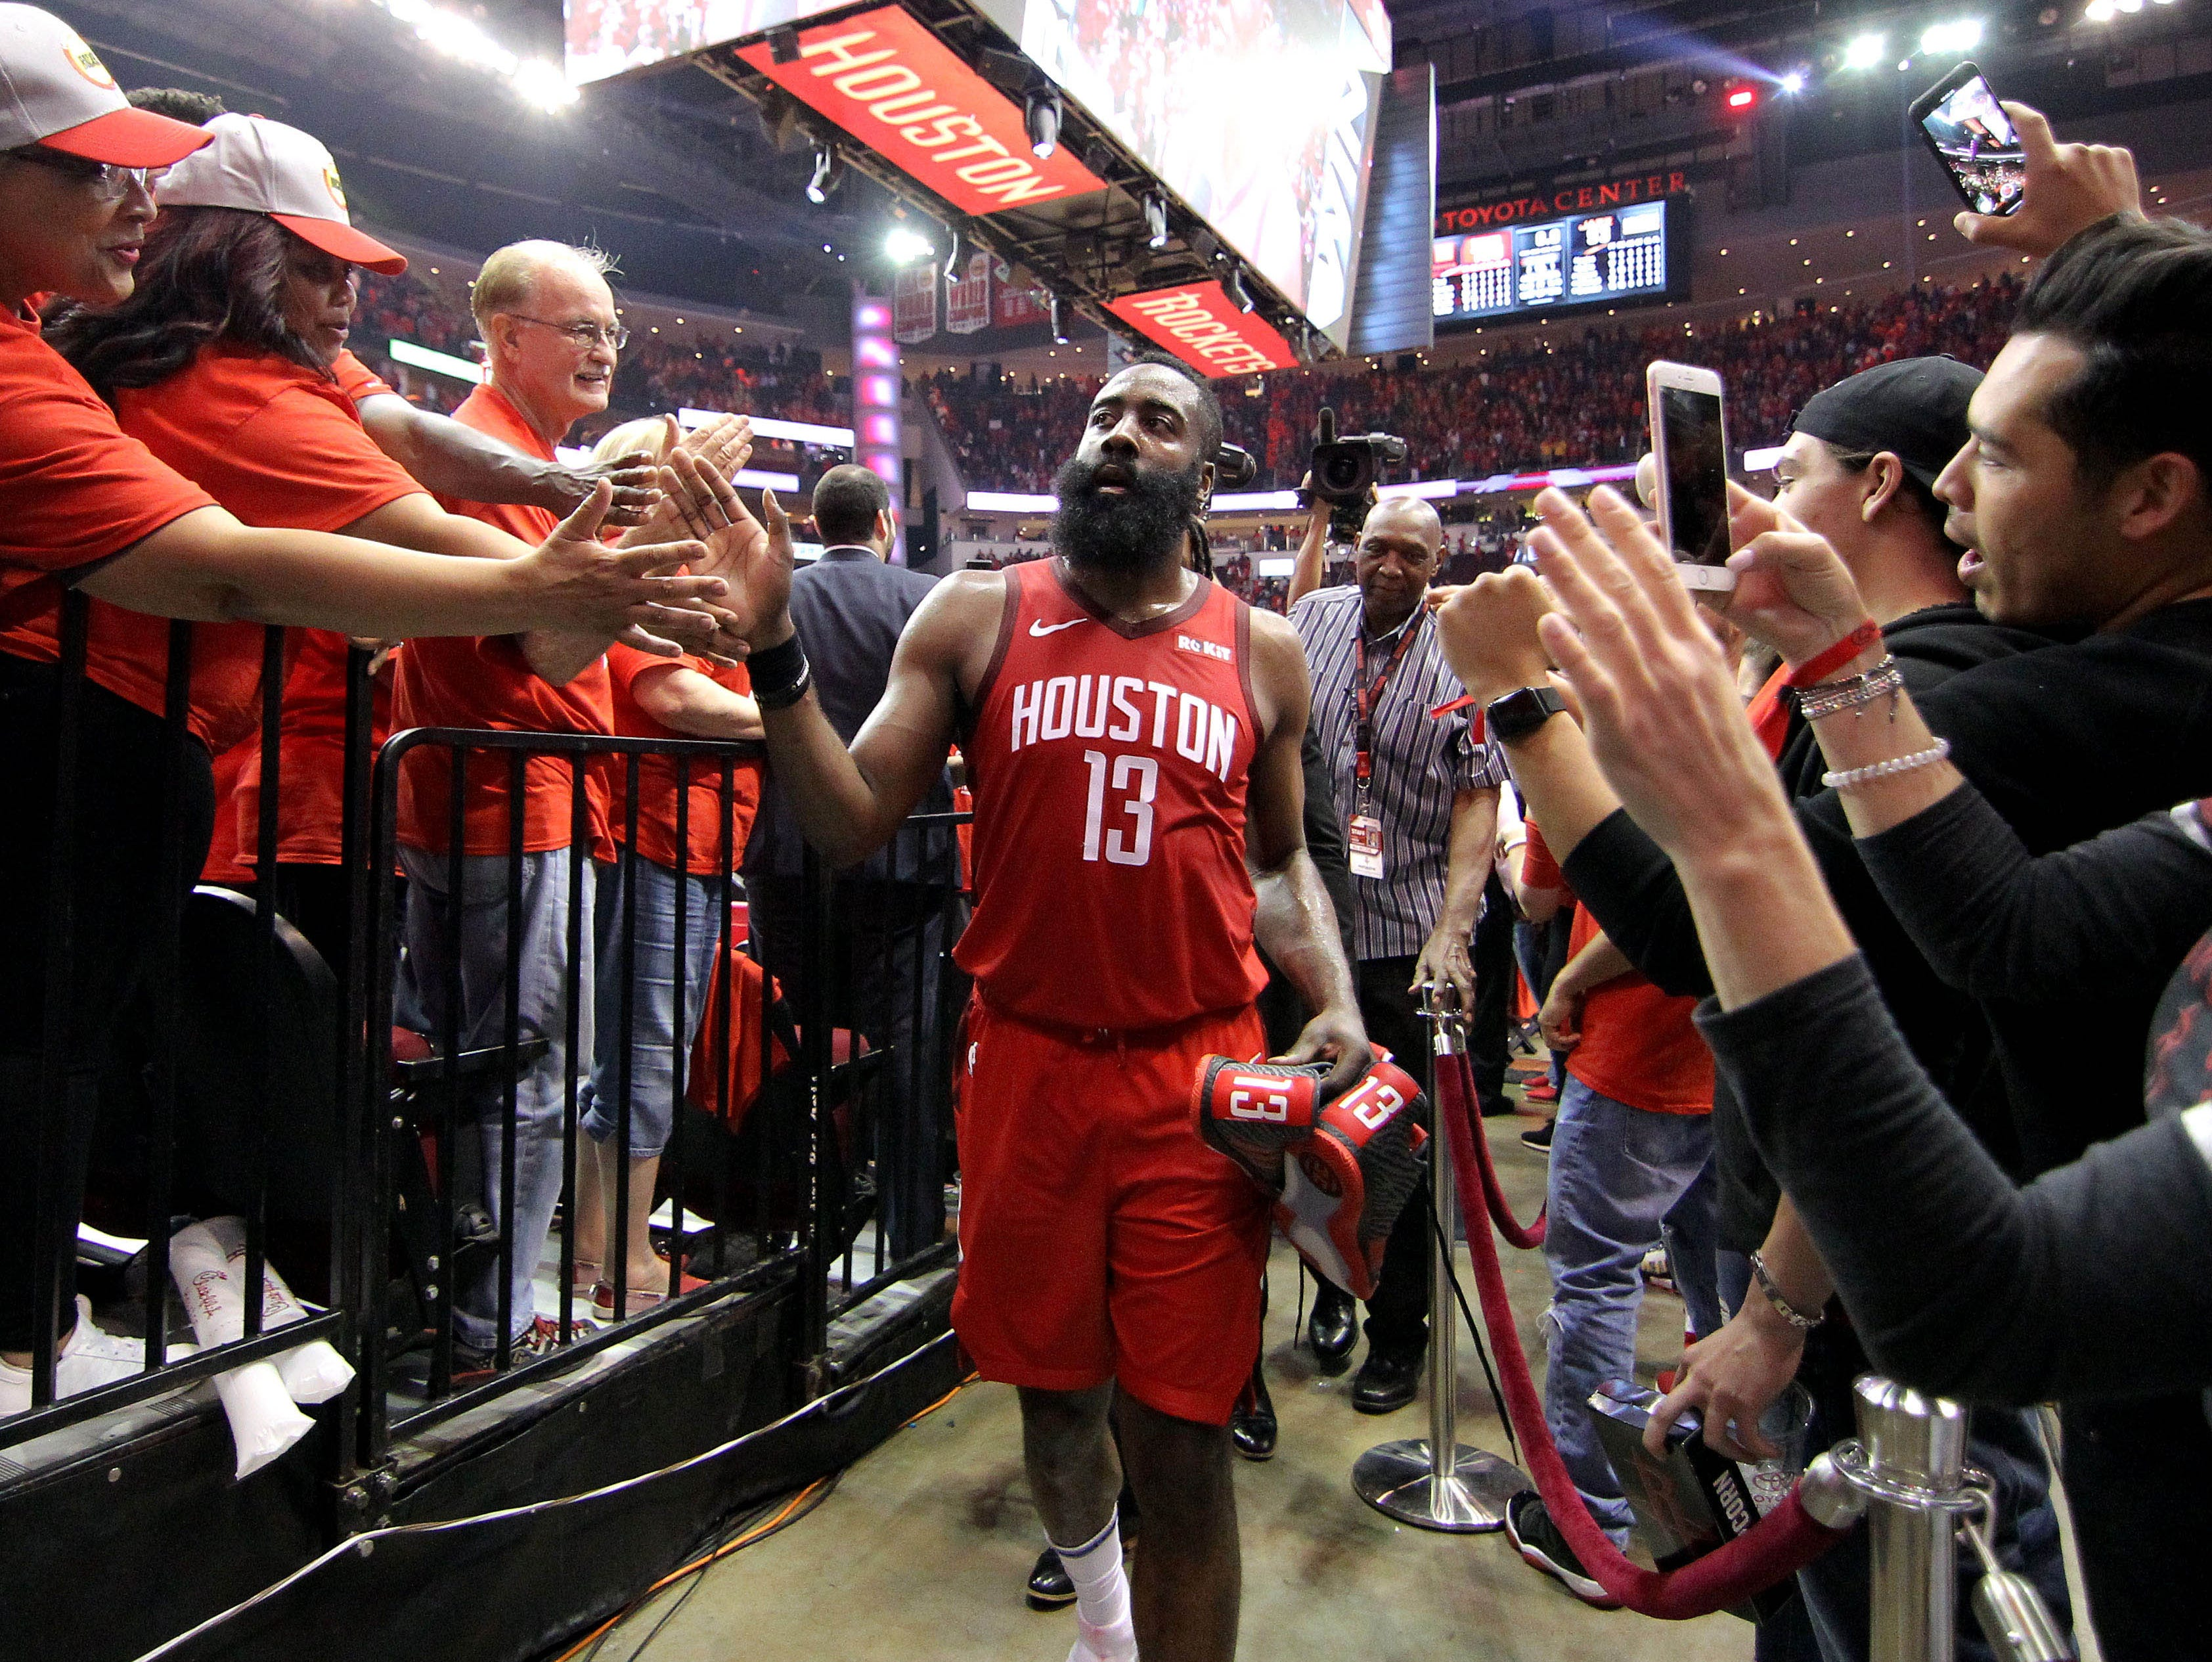 April 24: Rockets guard James Harden celebrates with fans as he leaves the floor after eliminating the Jazz in Game 5.